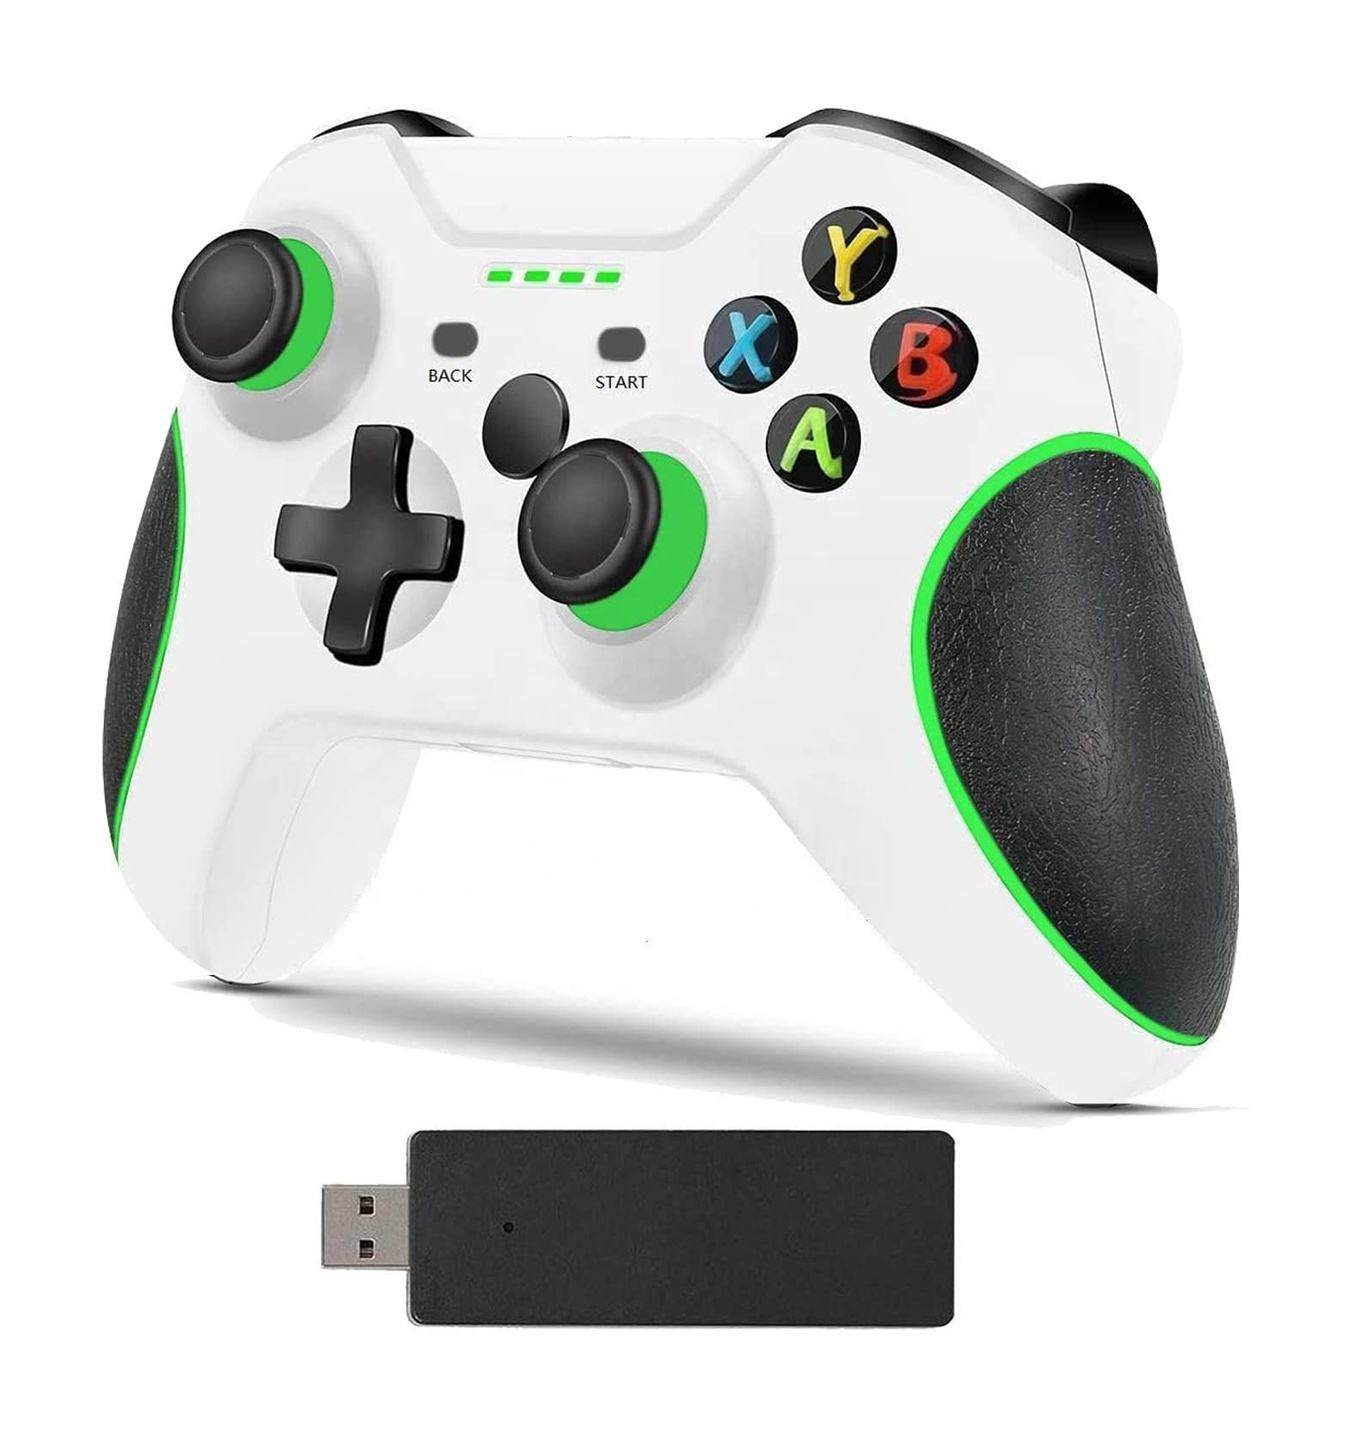 Factory price Xbox One Wireless Controller Compatible with Xbox One/One S/One X and PC with Built-in Dual Vibration